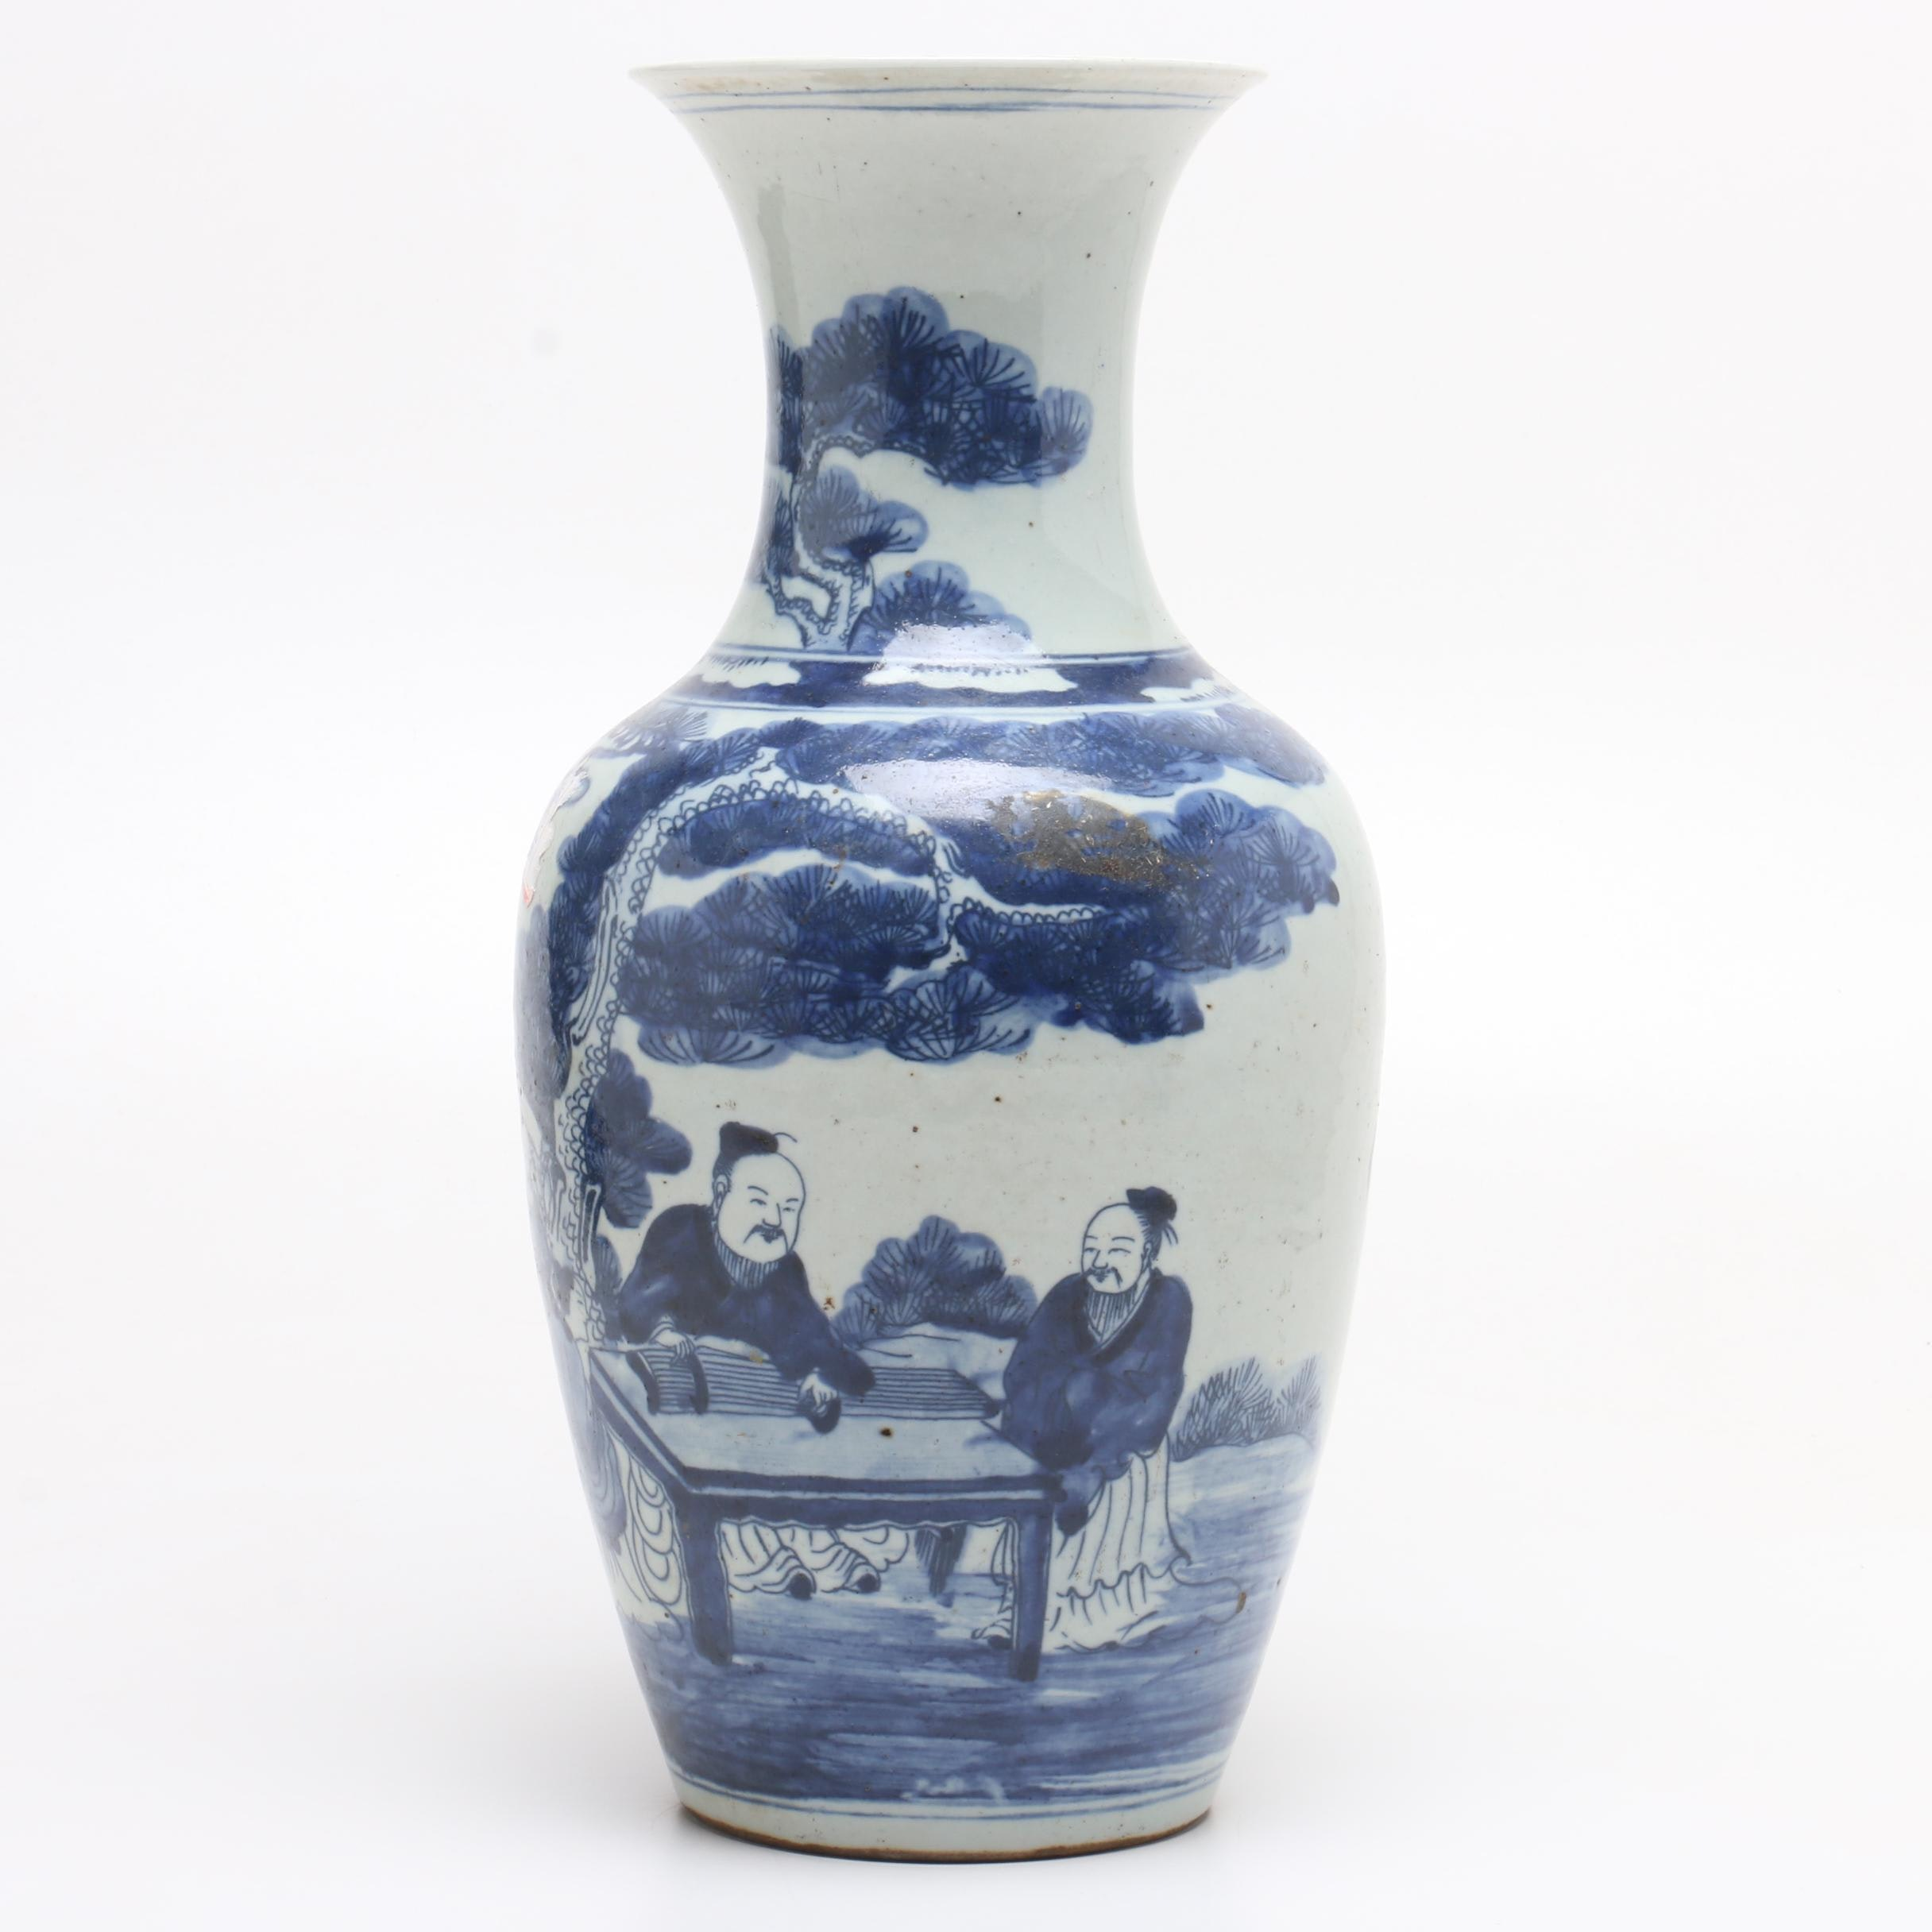 Chinese Porcelain Vase Depicting Scholars in a Garden, Qing Dynasty